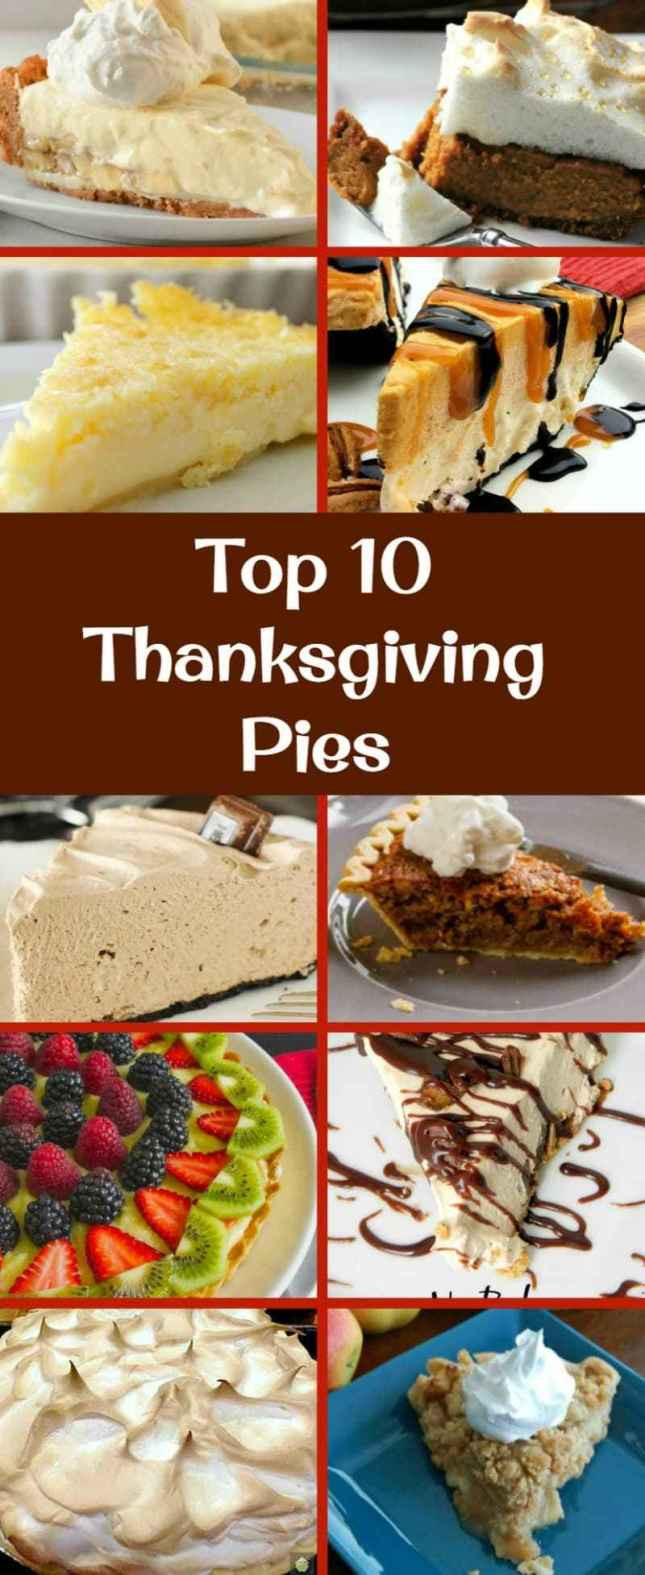 Best Thanksgiving Pies  The BEST Top 10 Thanksgiving Pies – Lovefoo s